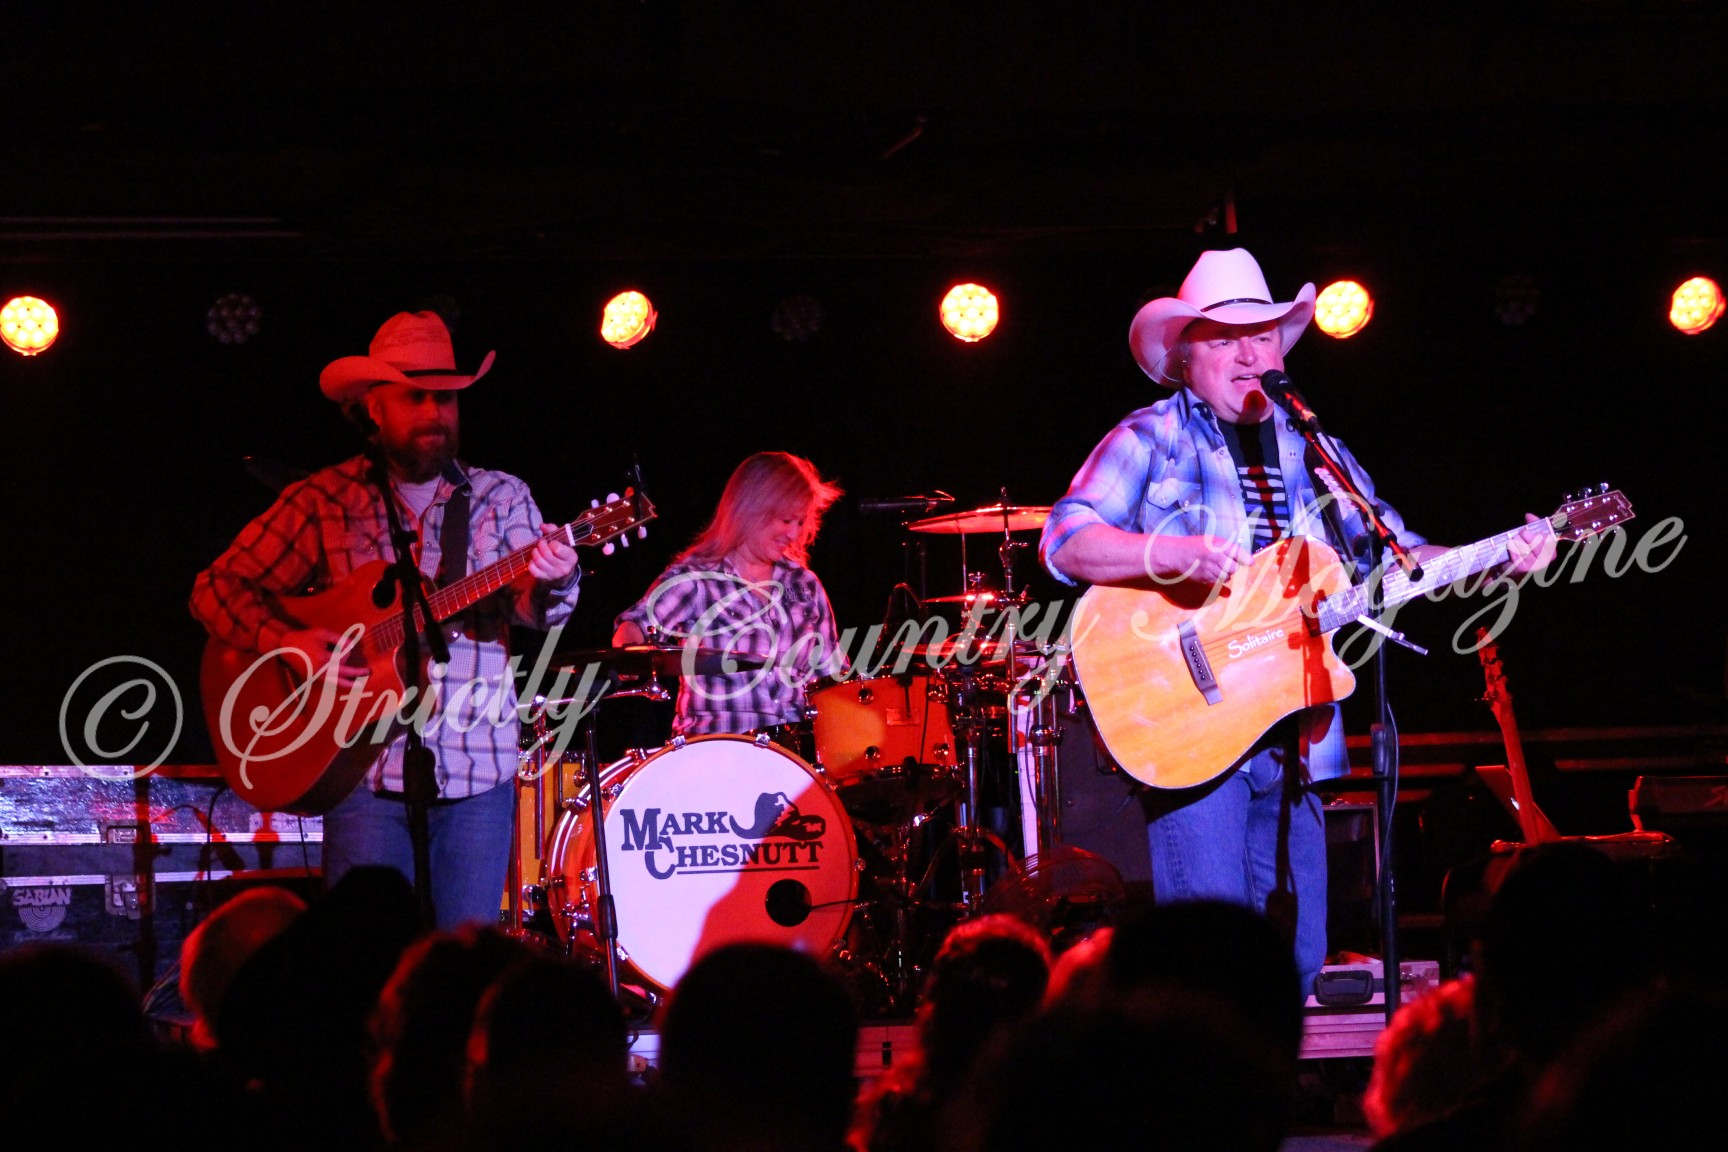 Strictly Country Magazine Mark Chesnutt October 6, 2017 performance